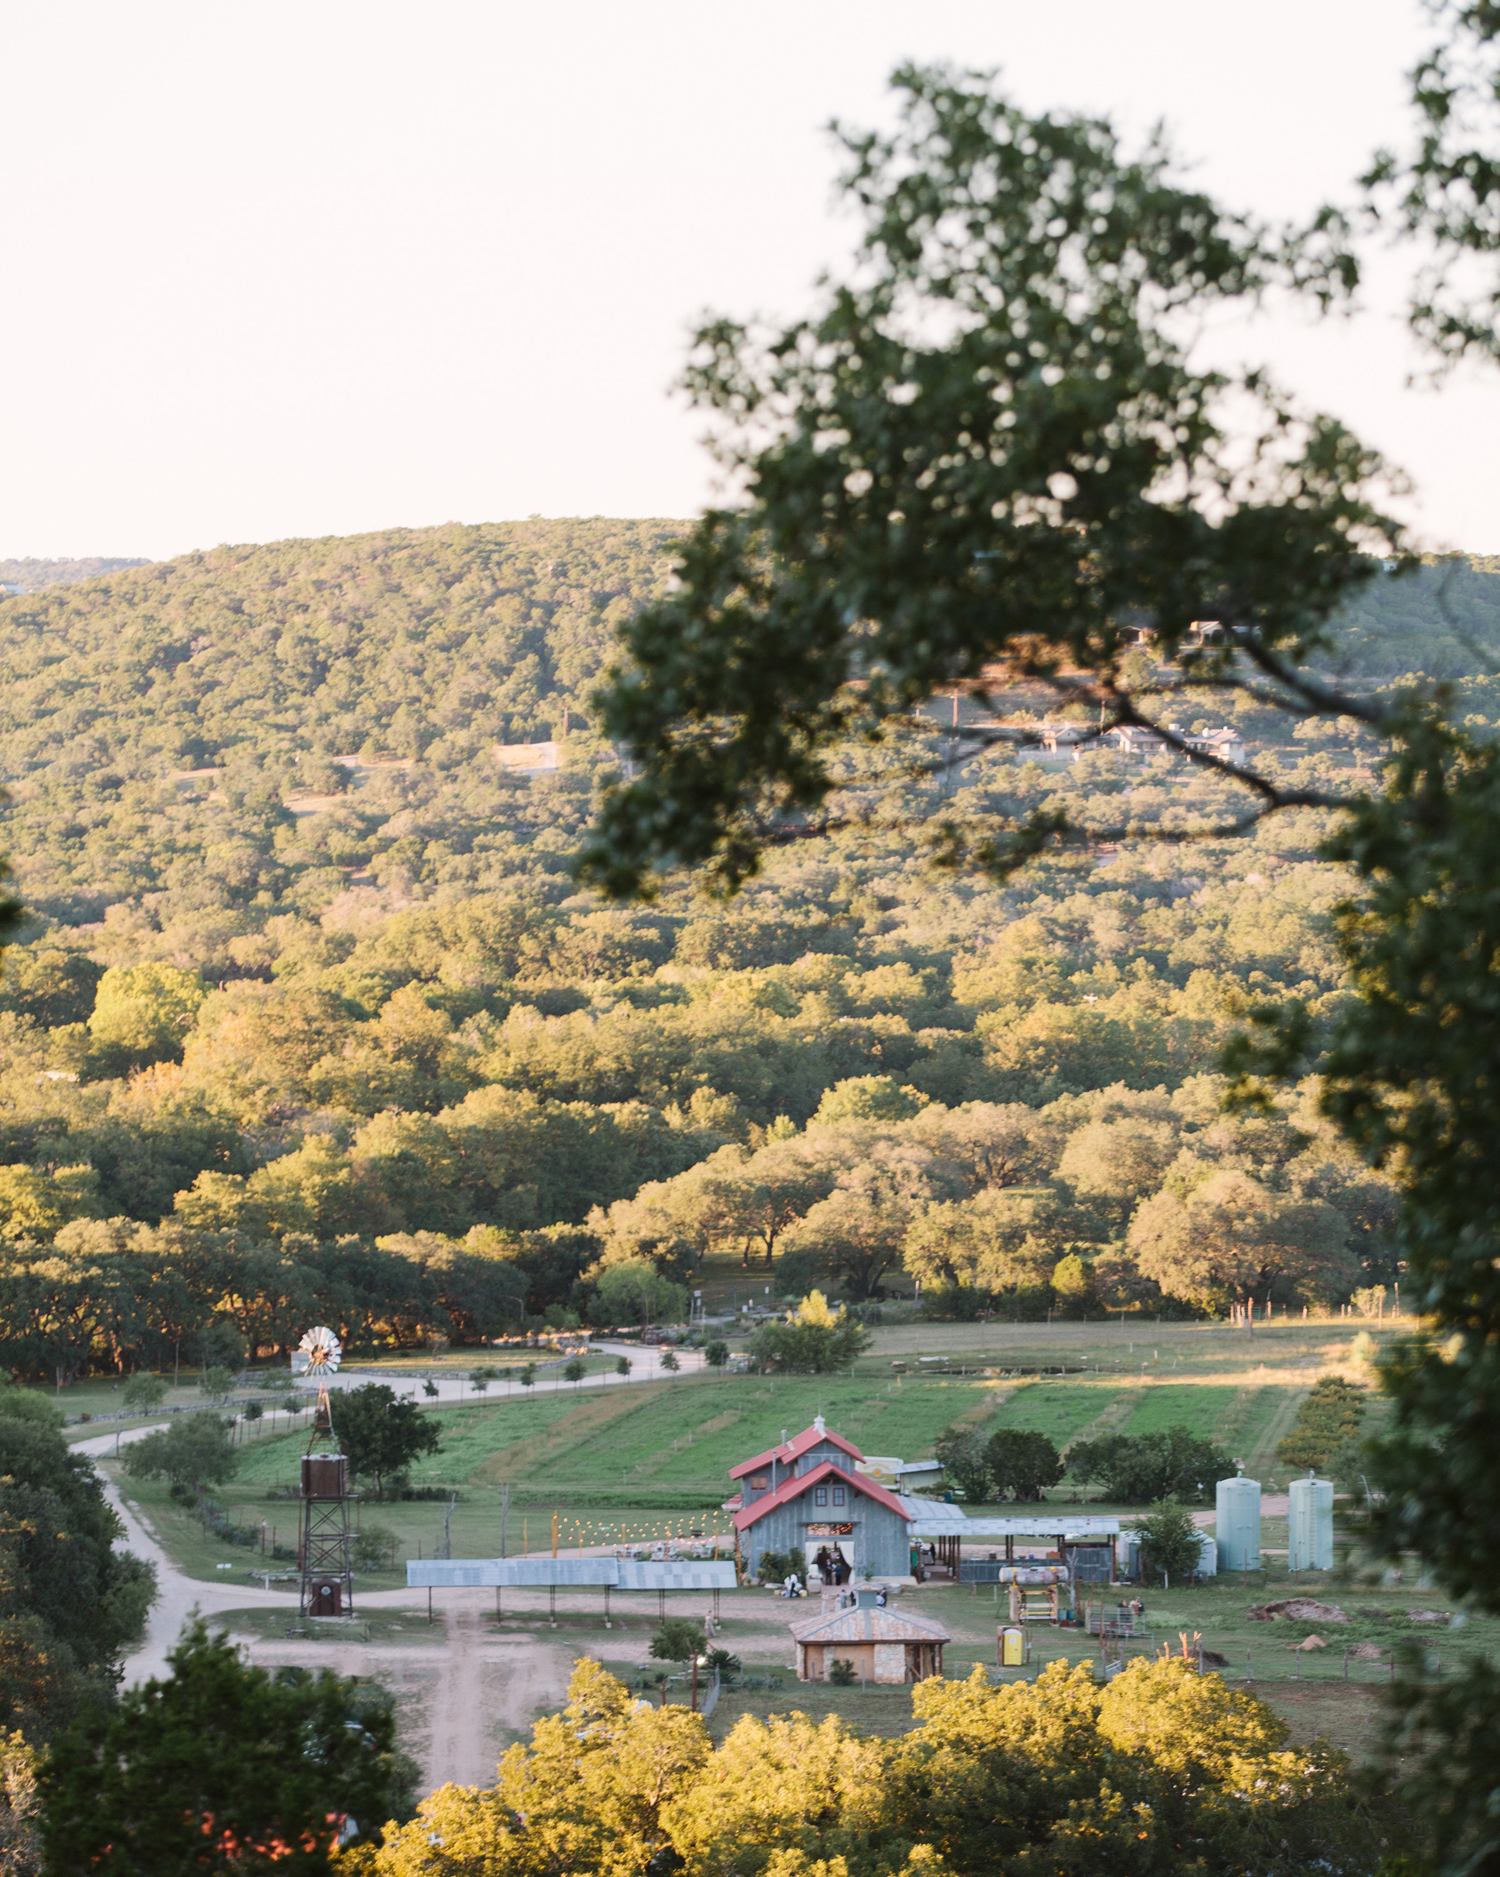 rustic-wedding-handbook-venues-montesino-ranch-view-of-property-0914.jpg